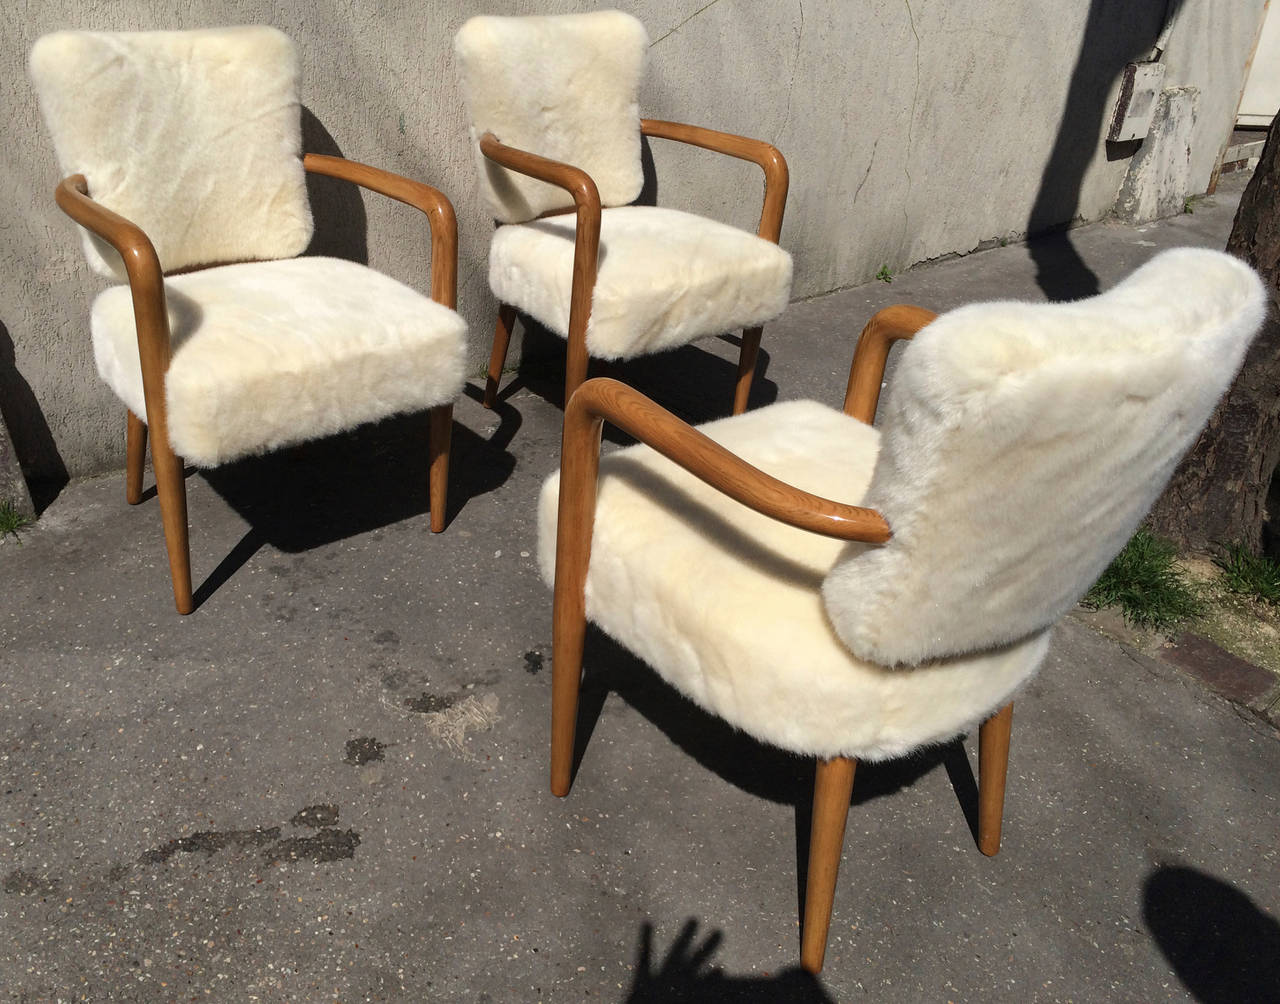 Cloth Covered Office Chairs Renou Et Genissetrare Set Of Three Desk Chairs Newly